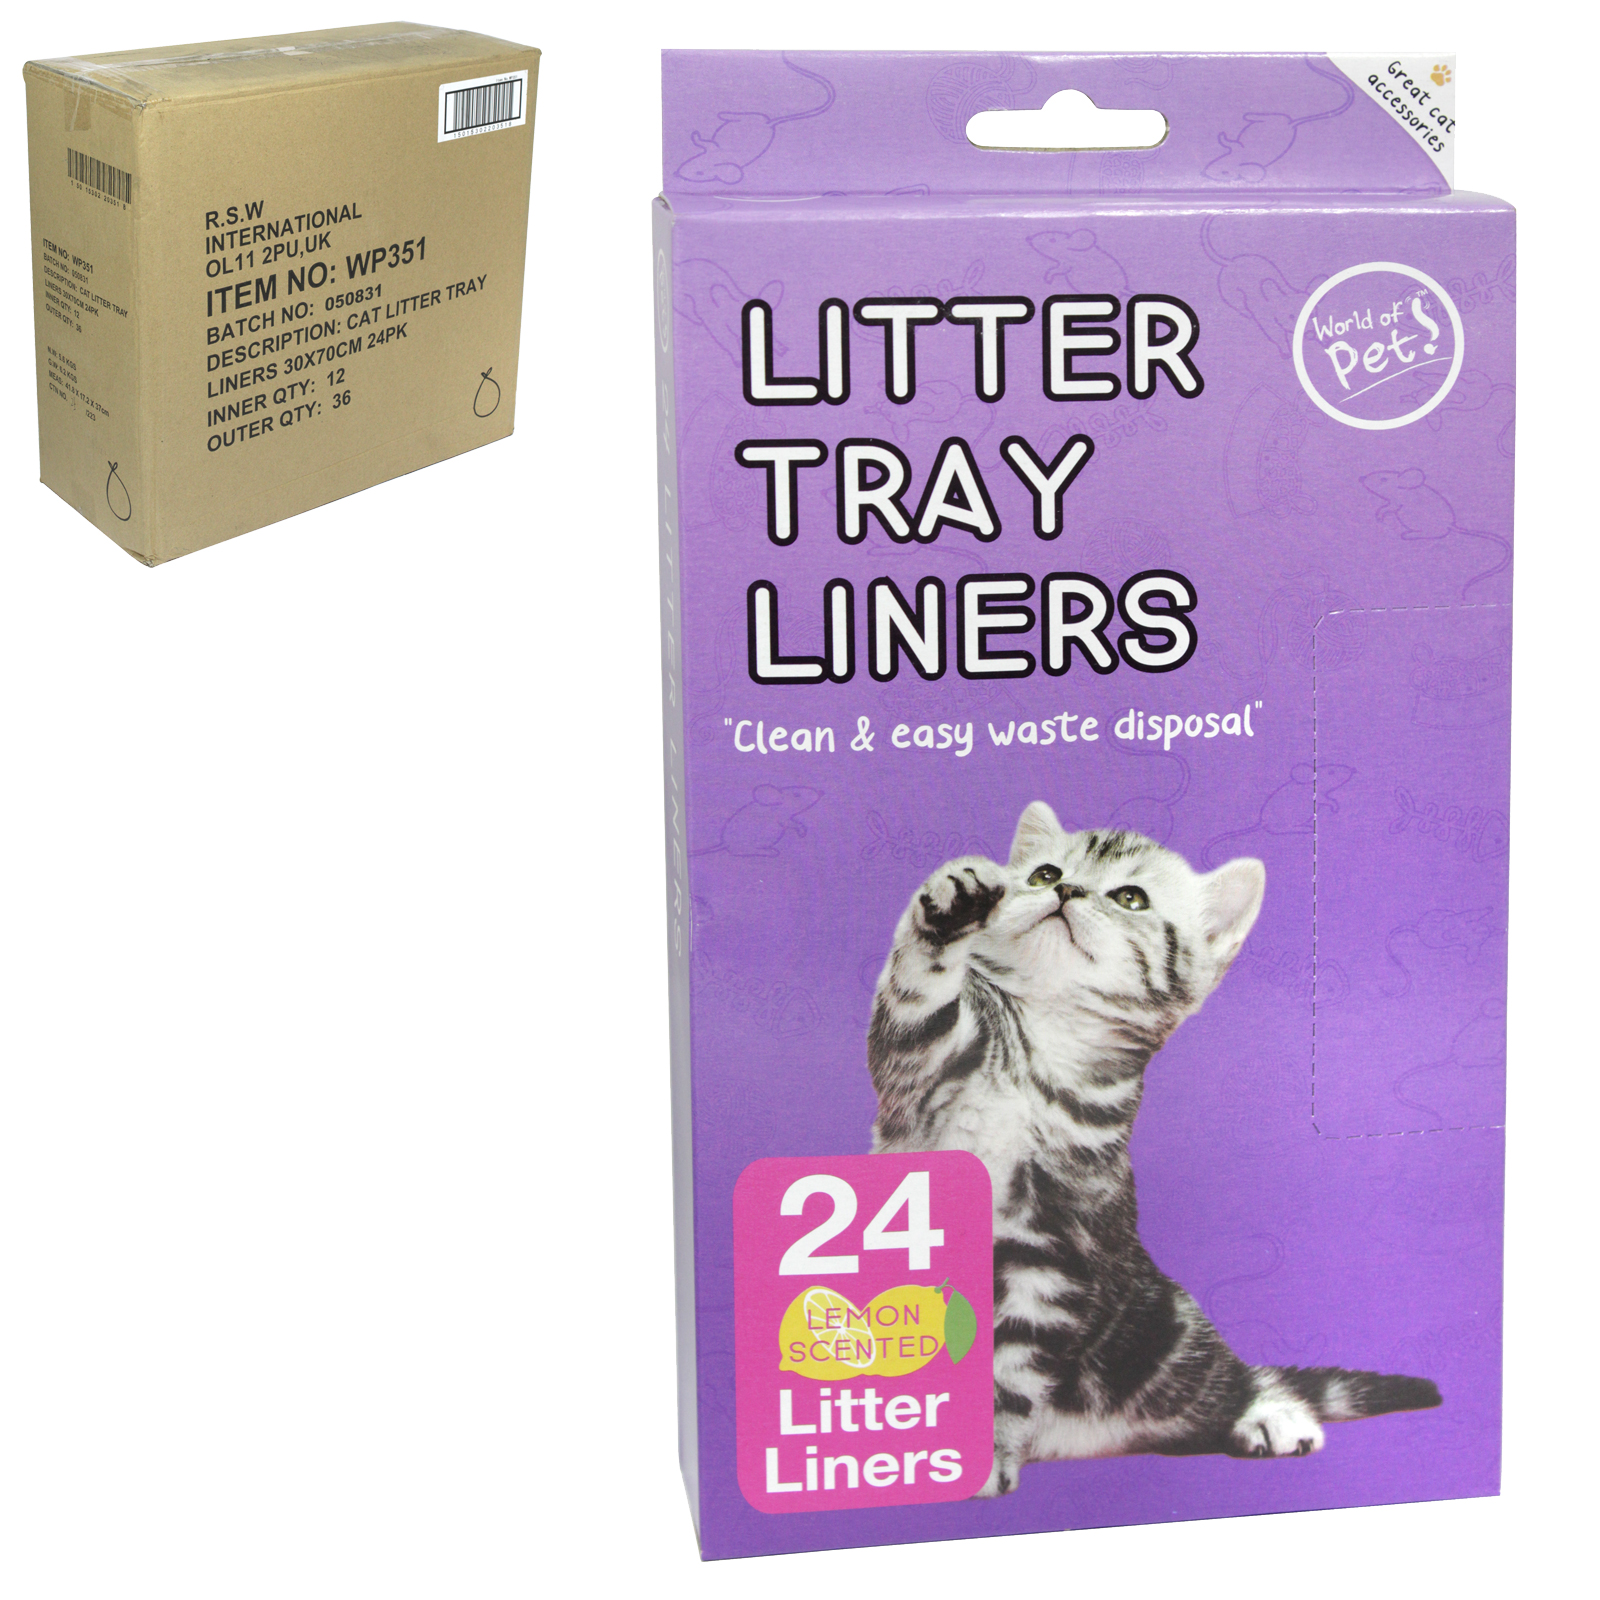 WORLD OF PETS 24 LITTER LINERS X12